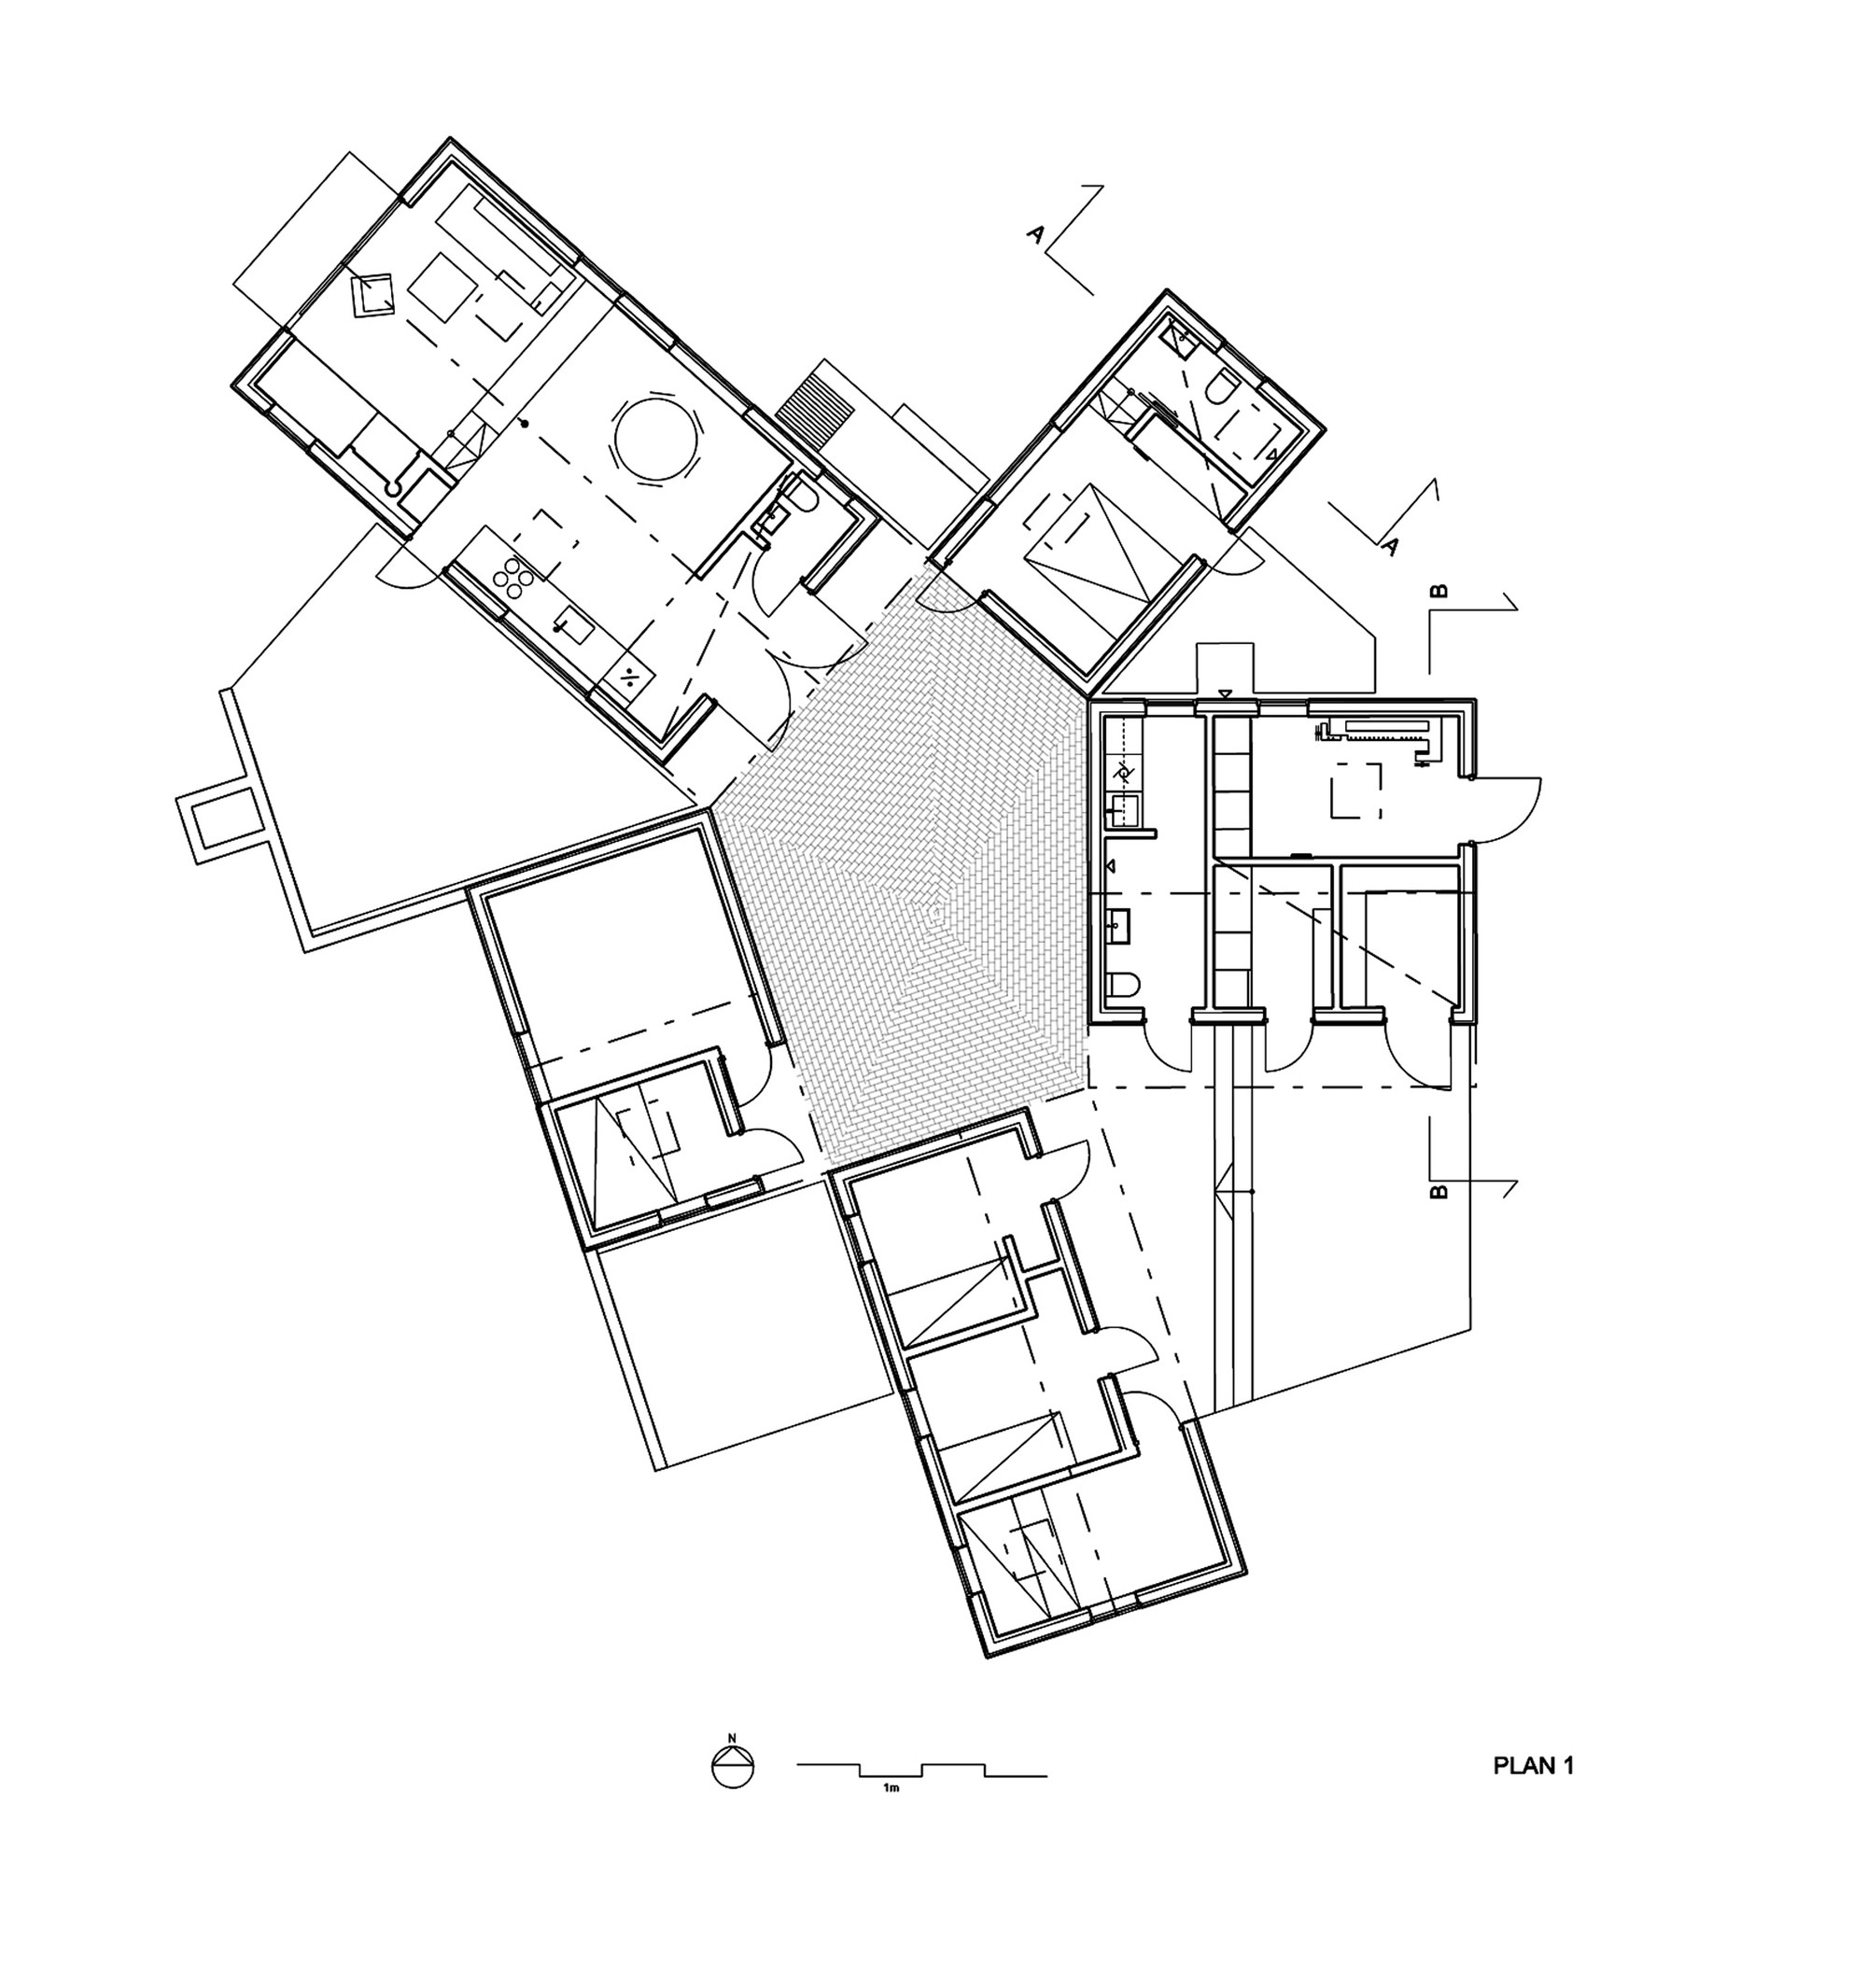 Summer house diagram wiring library summerhouse in denmark jva archdaily rh archdaily com fall diagram autumn diagram asfbconference2016 Images